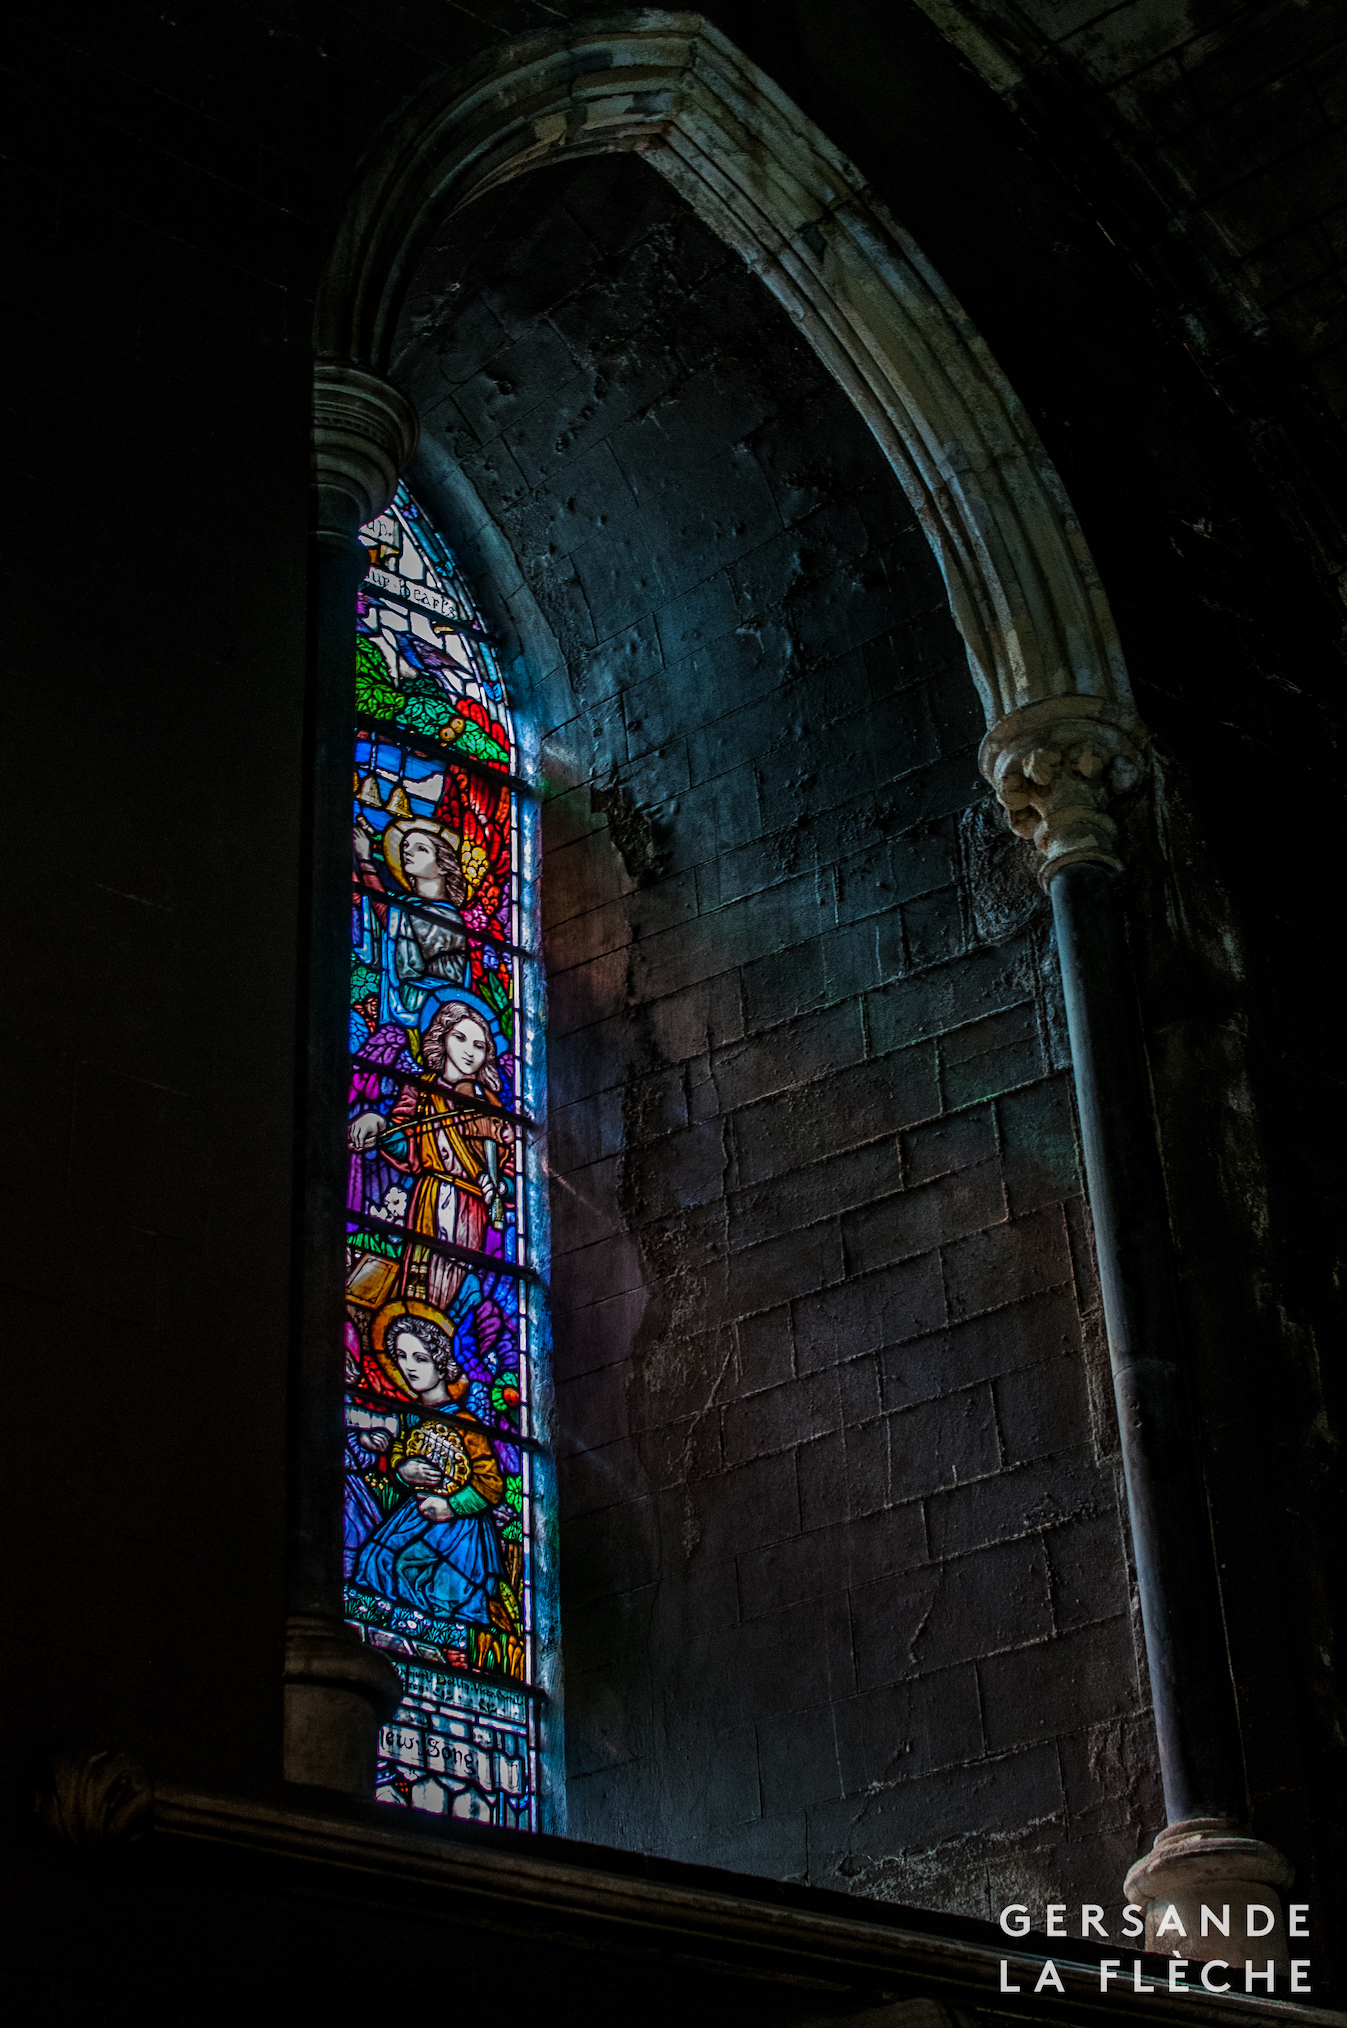 A photo by the author of a stained glass window inside St Patrick's cathedral.